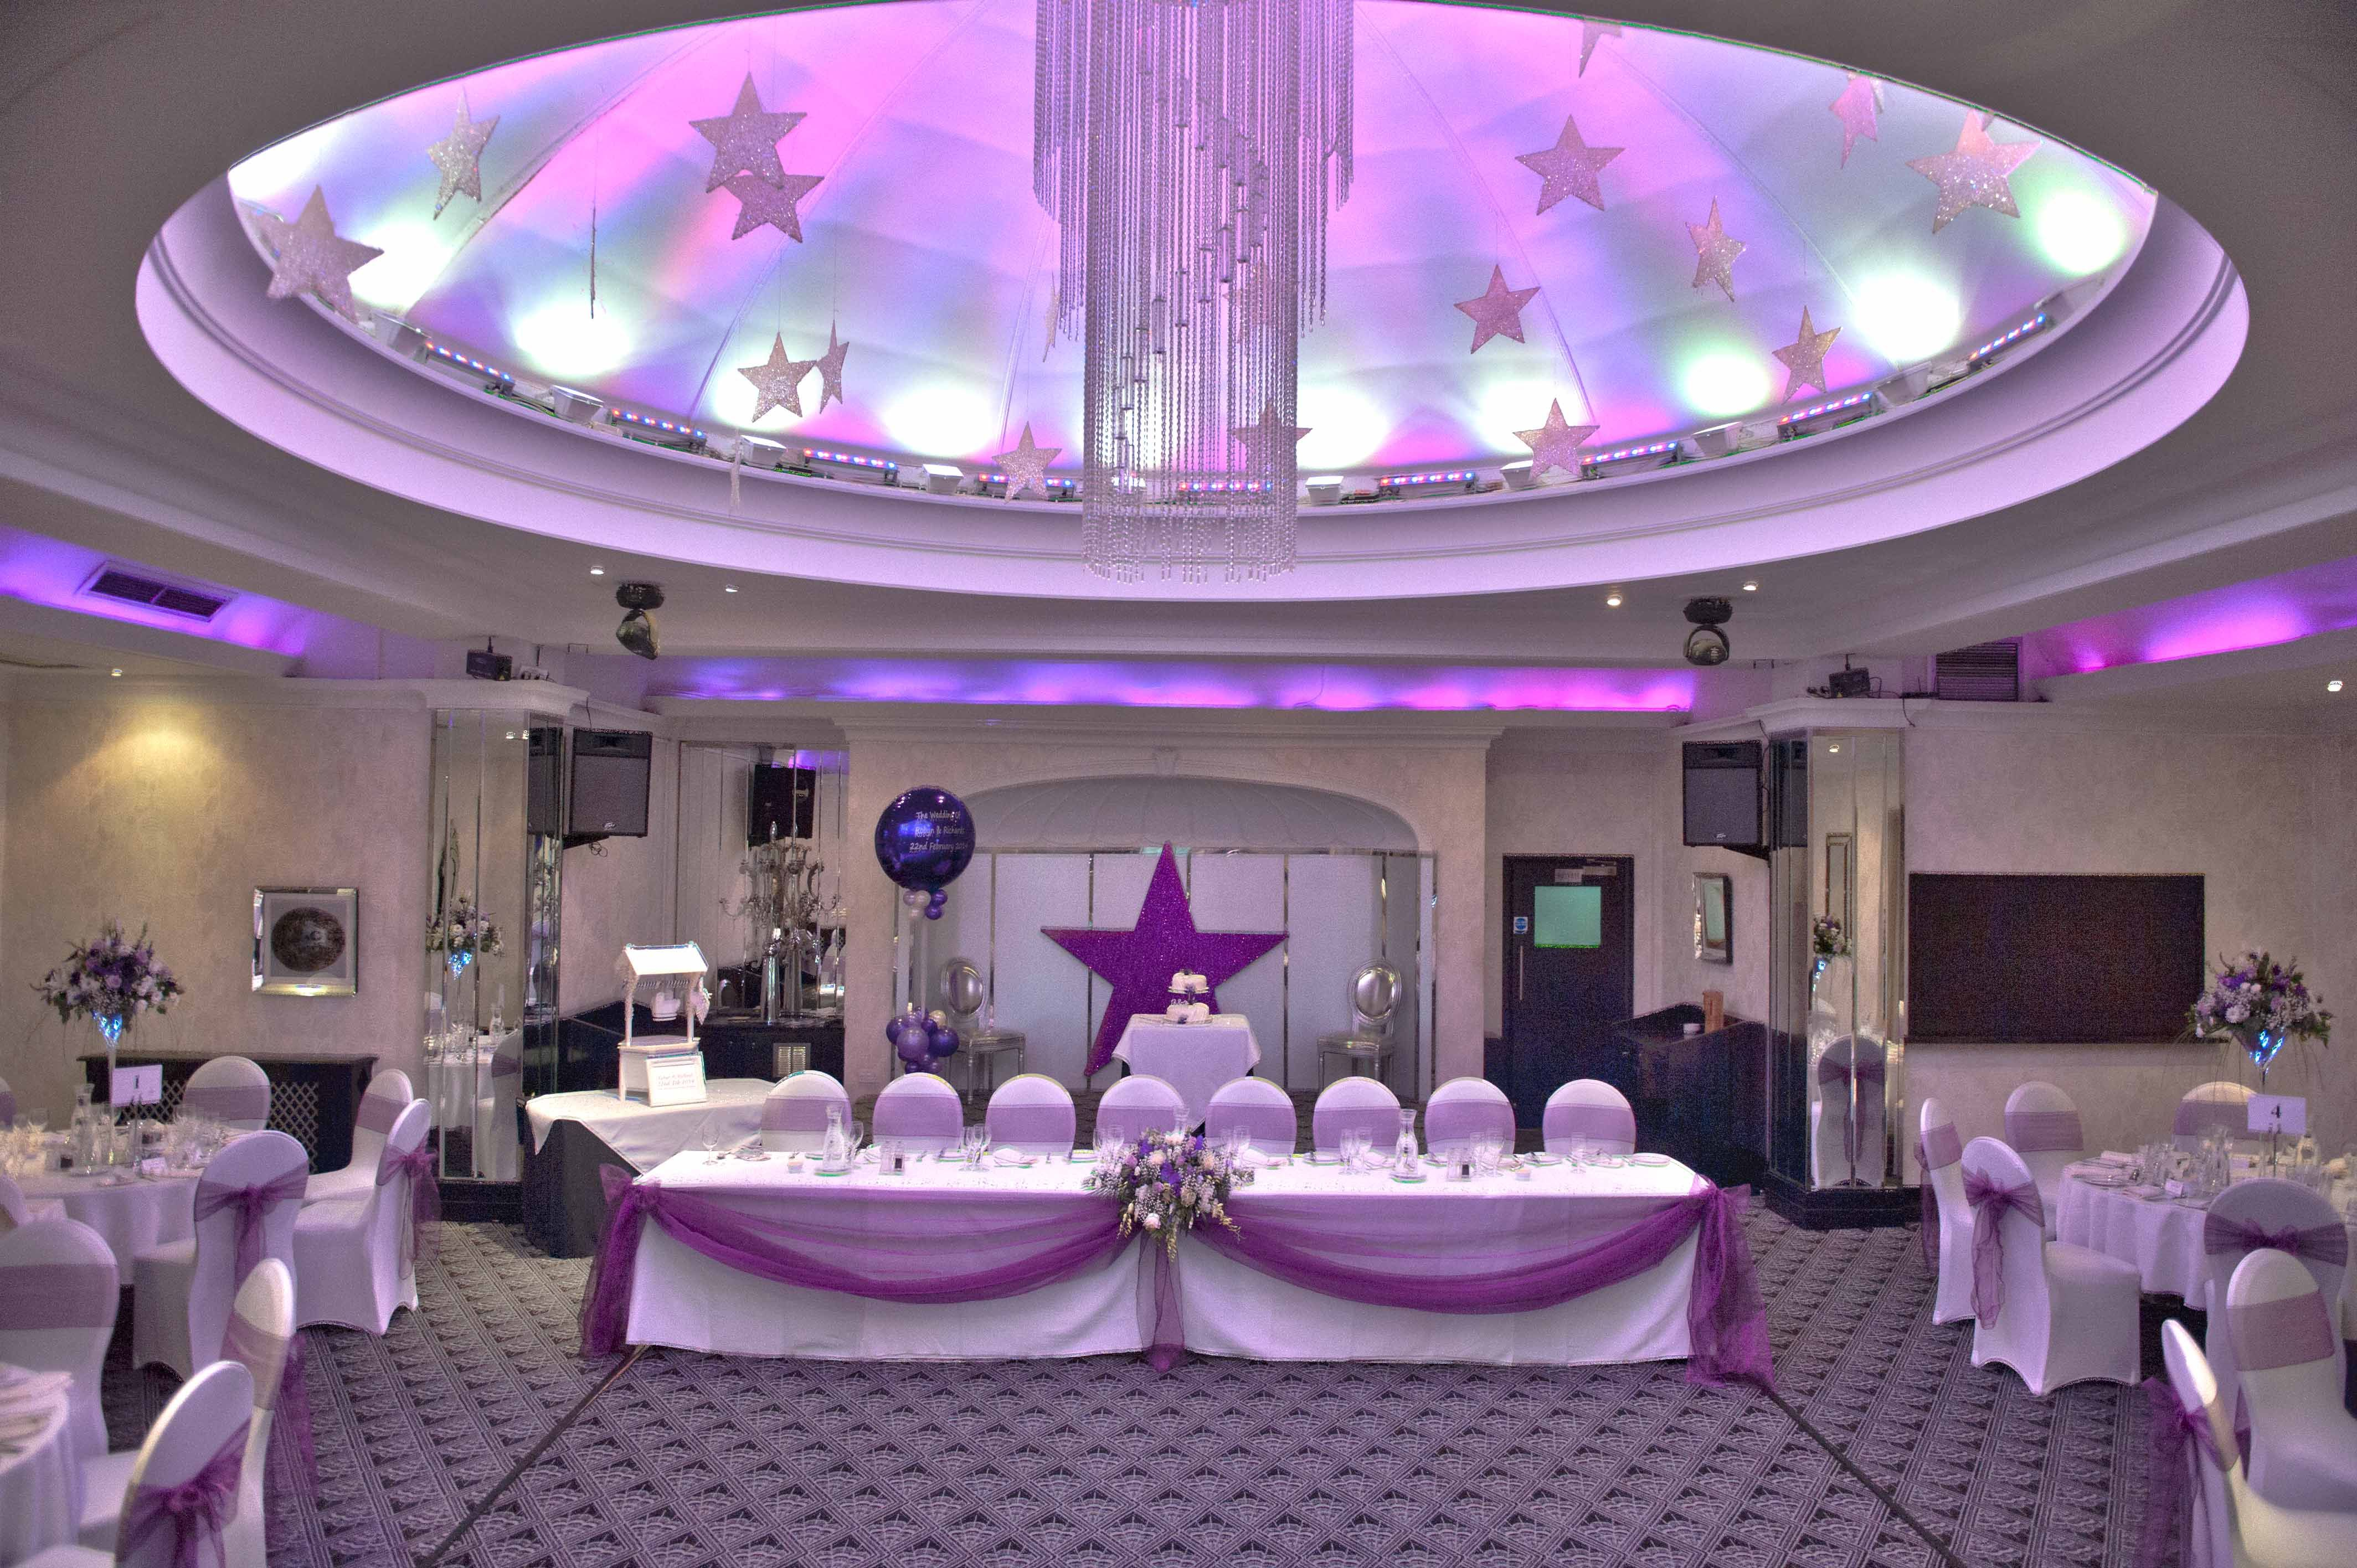 Purple Star Wedding The Berland Hotel Bournemouth Http Www Berlandbournemouth